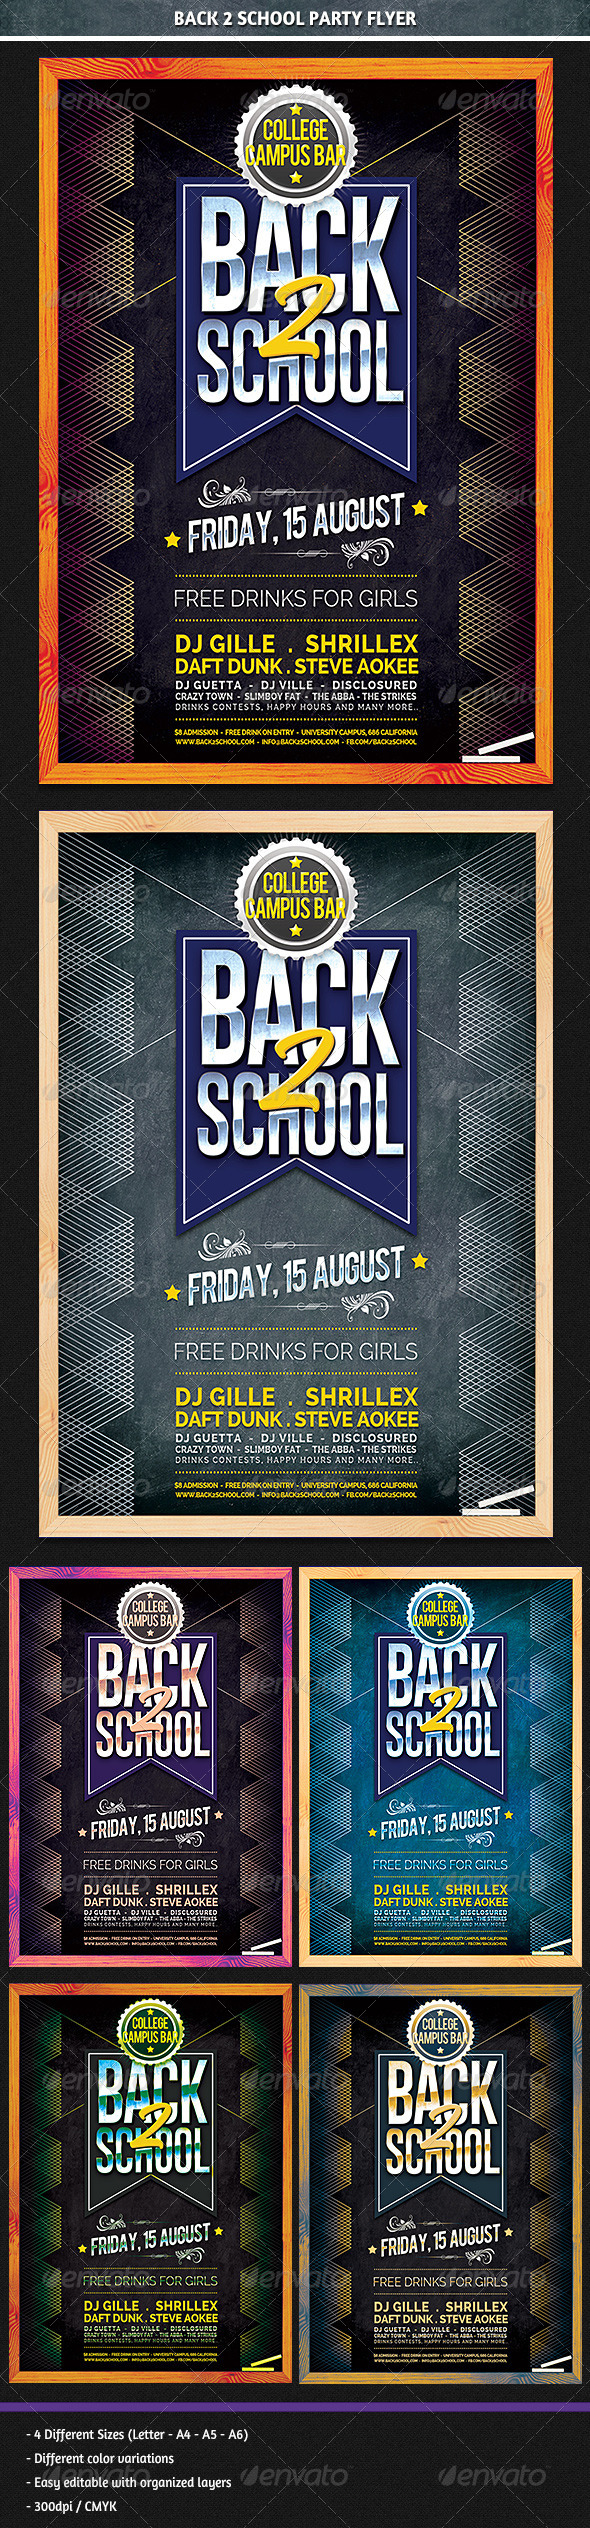 GraphicRiver Back 2 School Party Flyer 8504984